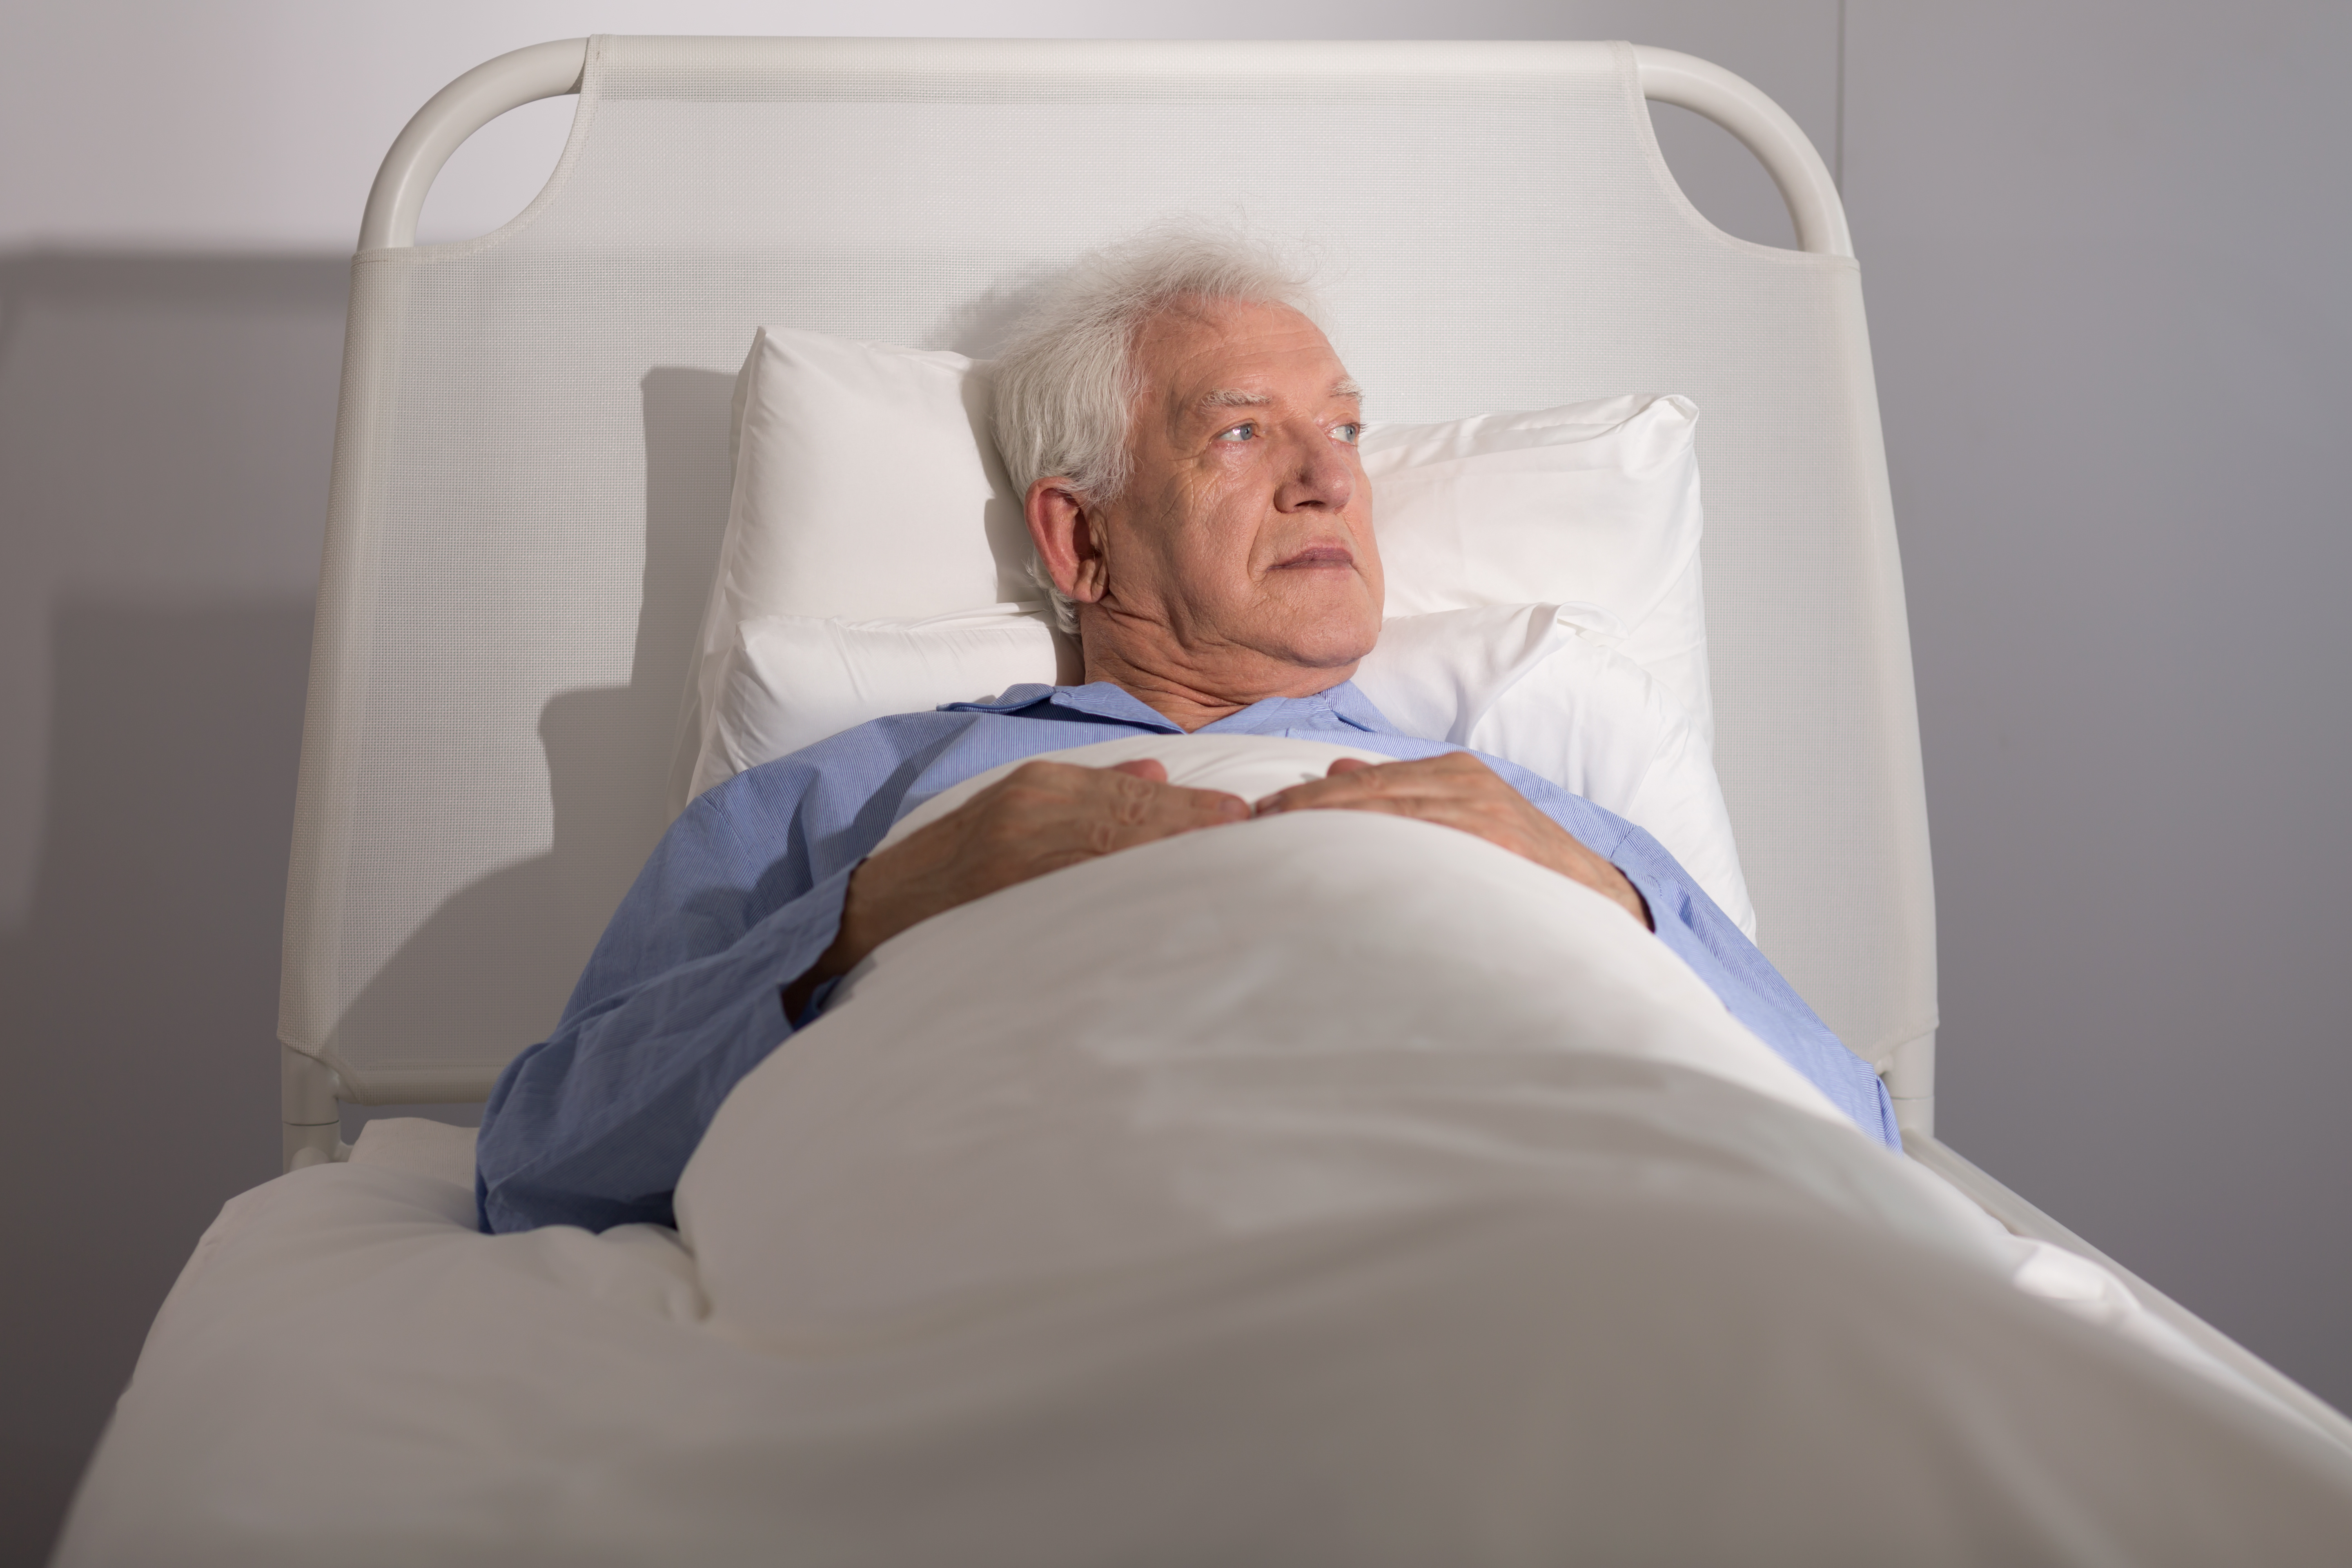 hospice, medical aid in dying, physician assisted suicide, MAID, PAS